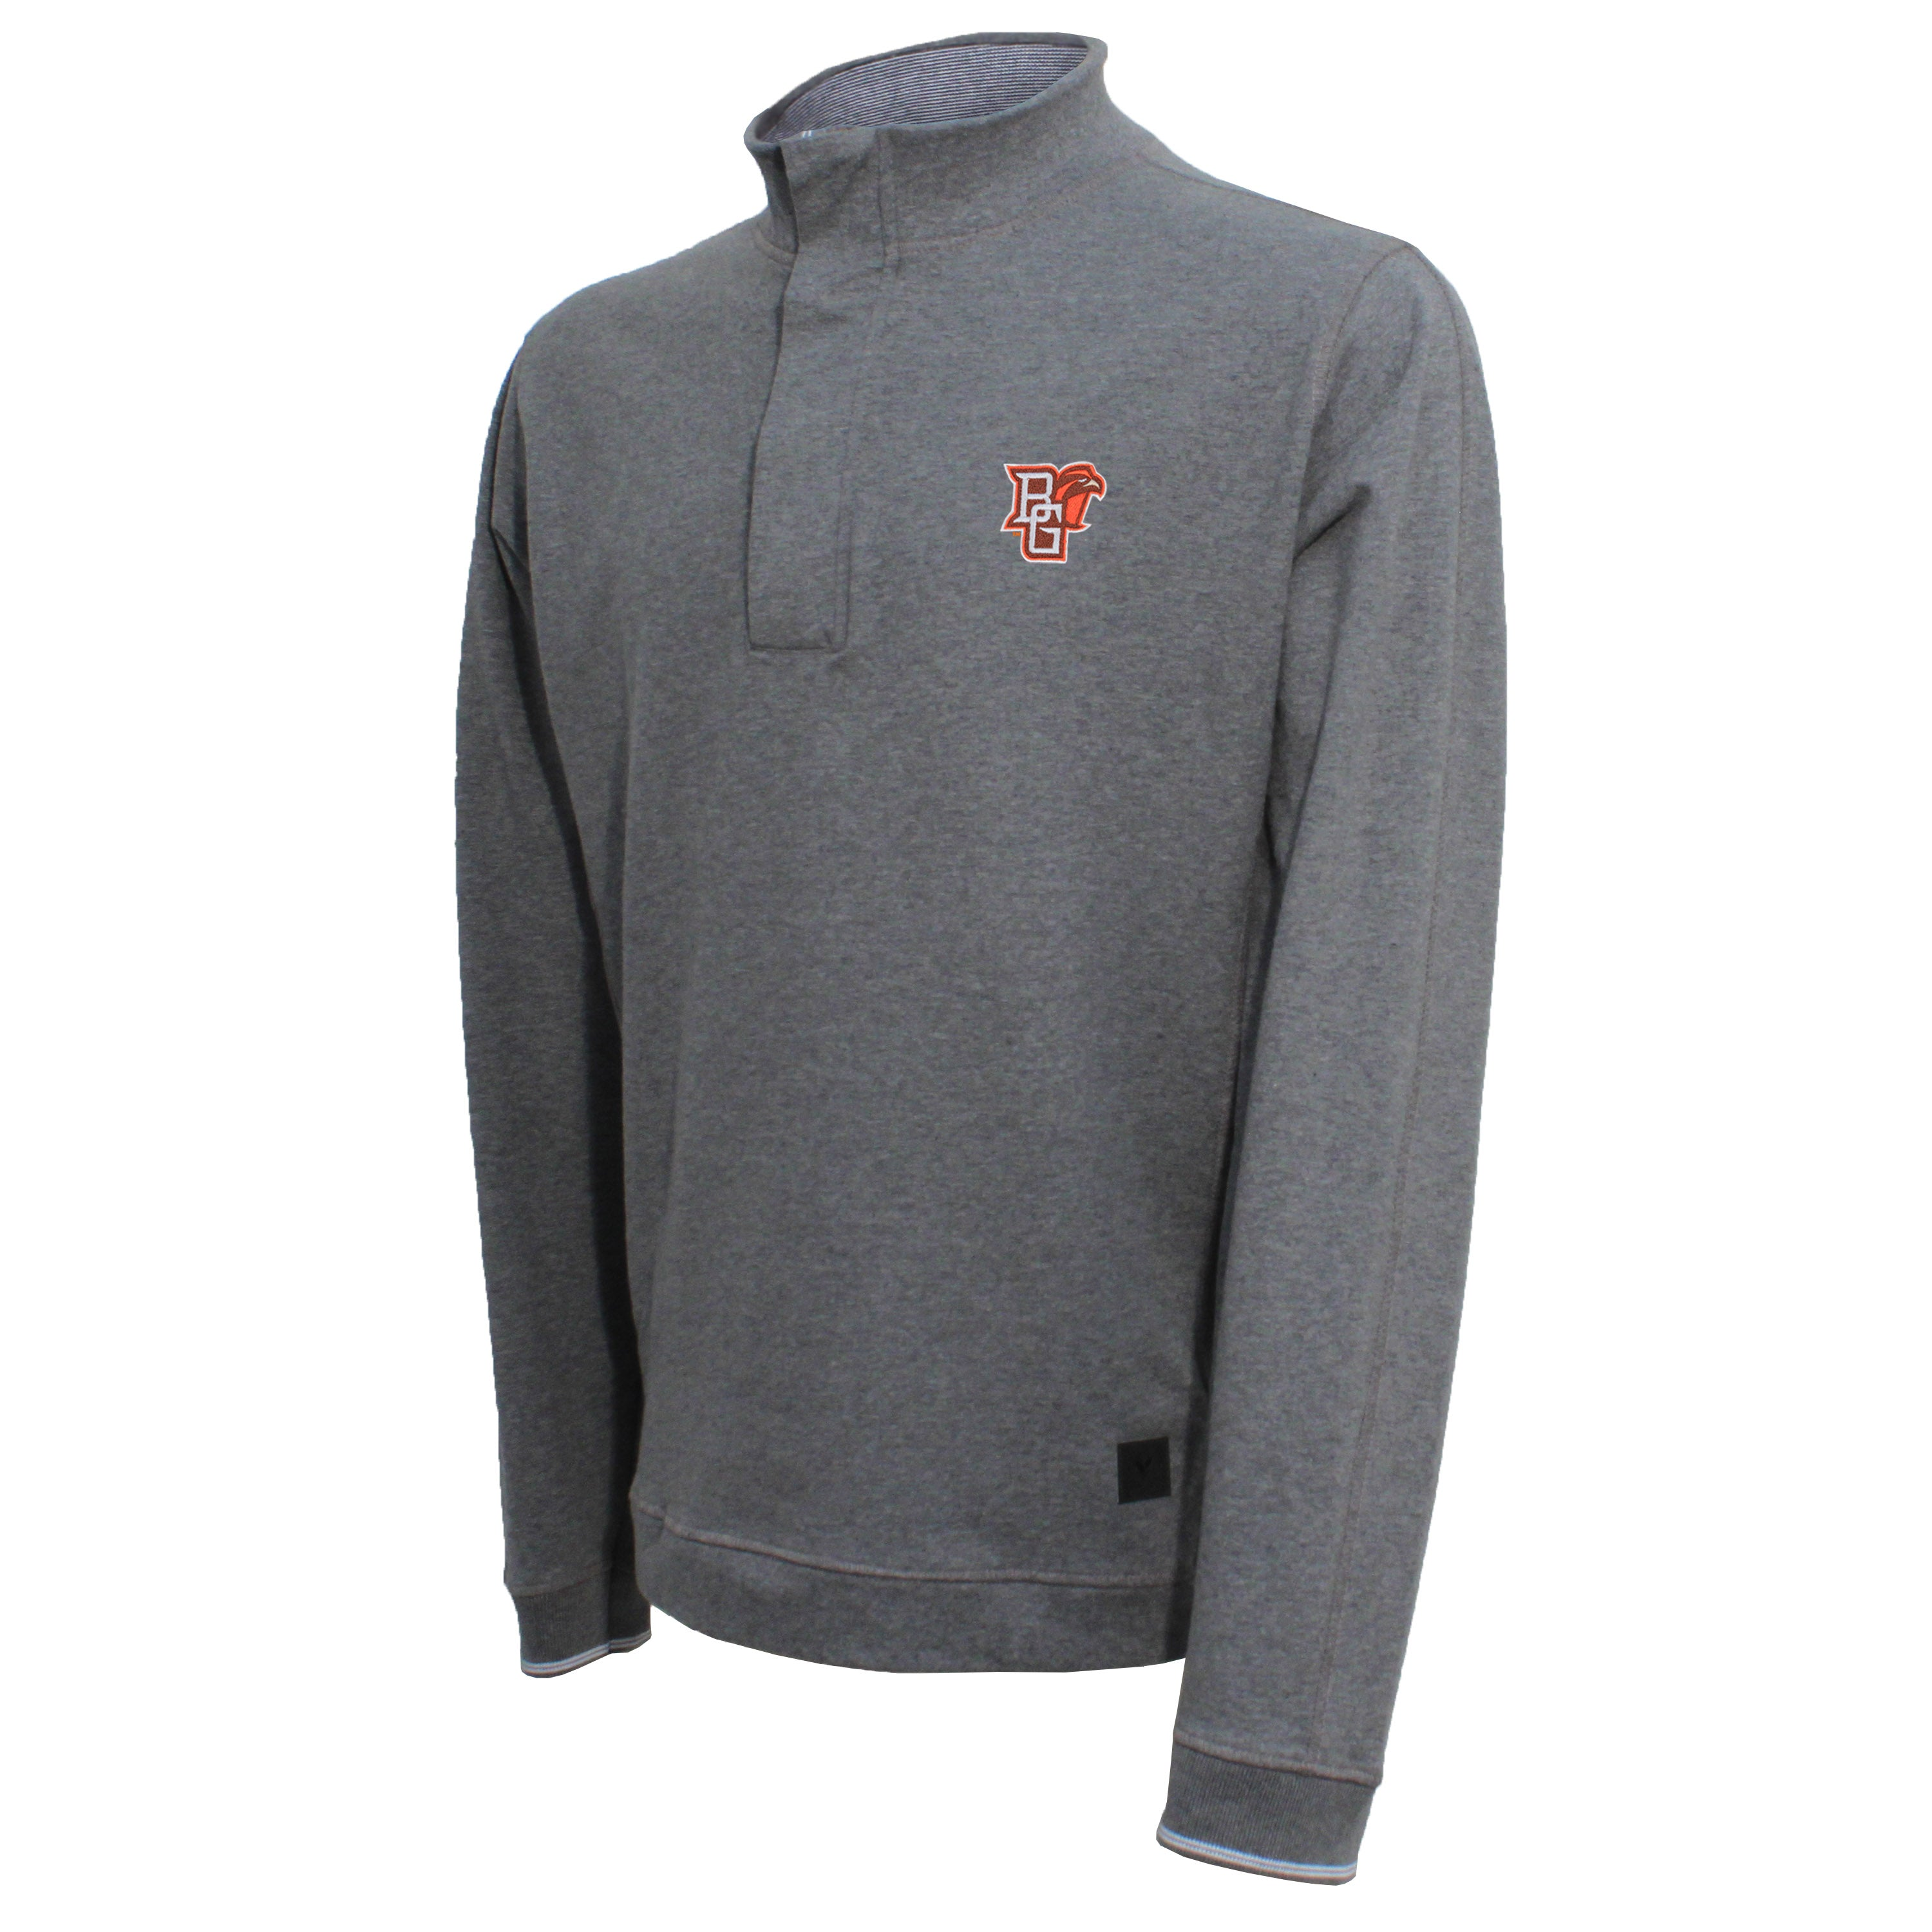 Vesi Bowling Green Men's Gray Quarter Zip Pullover